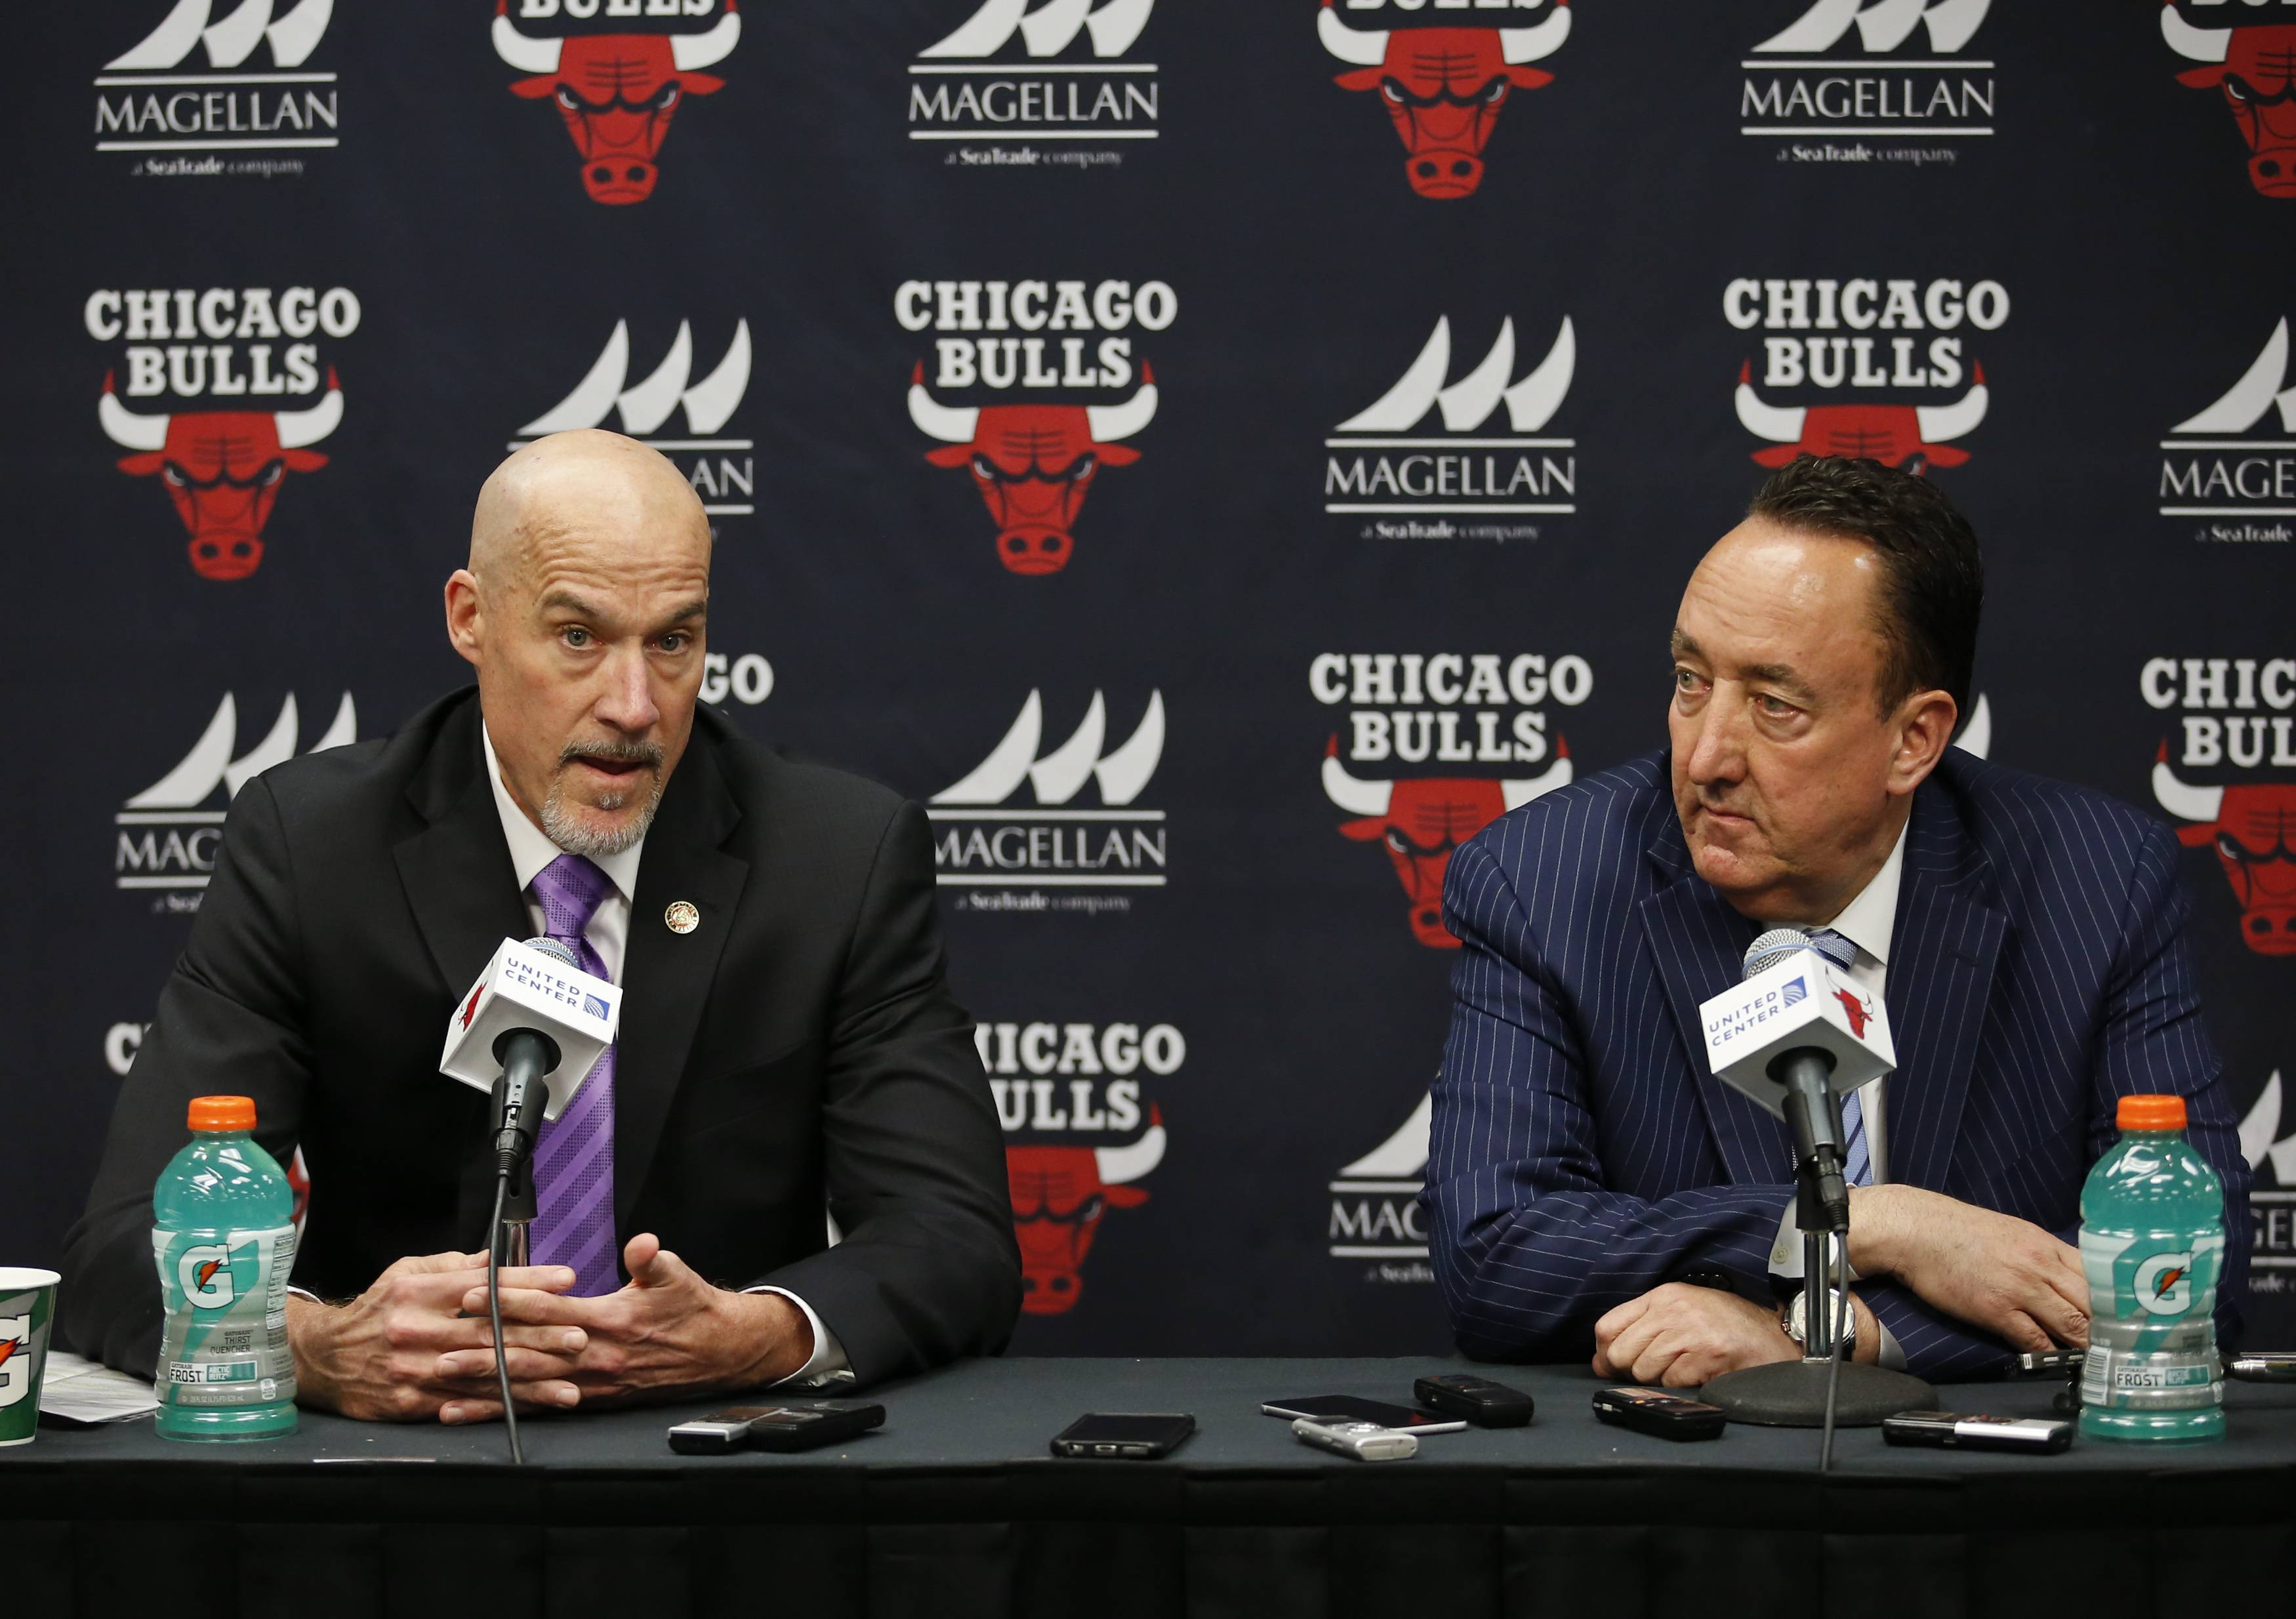 Recent developments might finally signal a new direction for the Chicago Bulls under executive vice president of basketball operations John Paxson, left, and general manager Gar Forman.